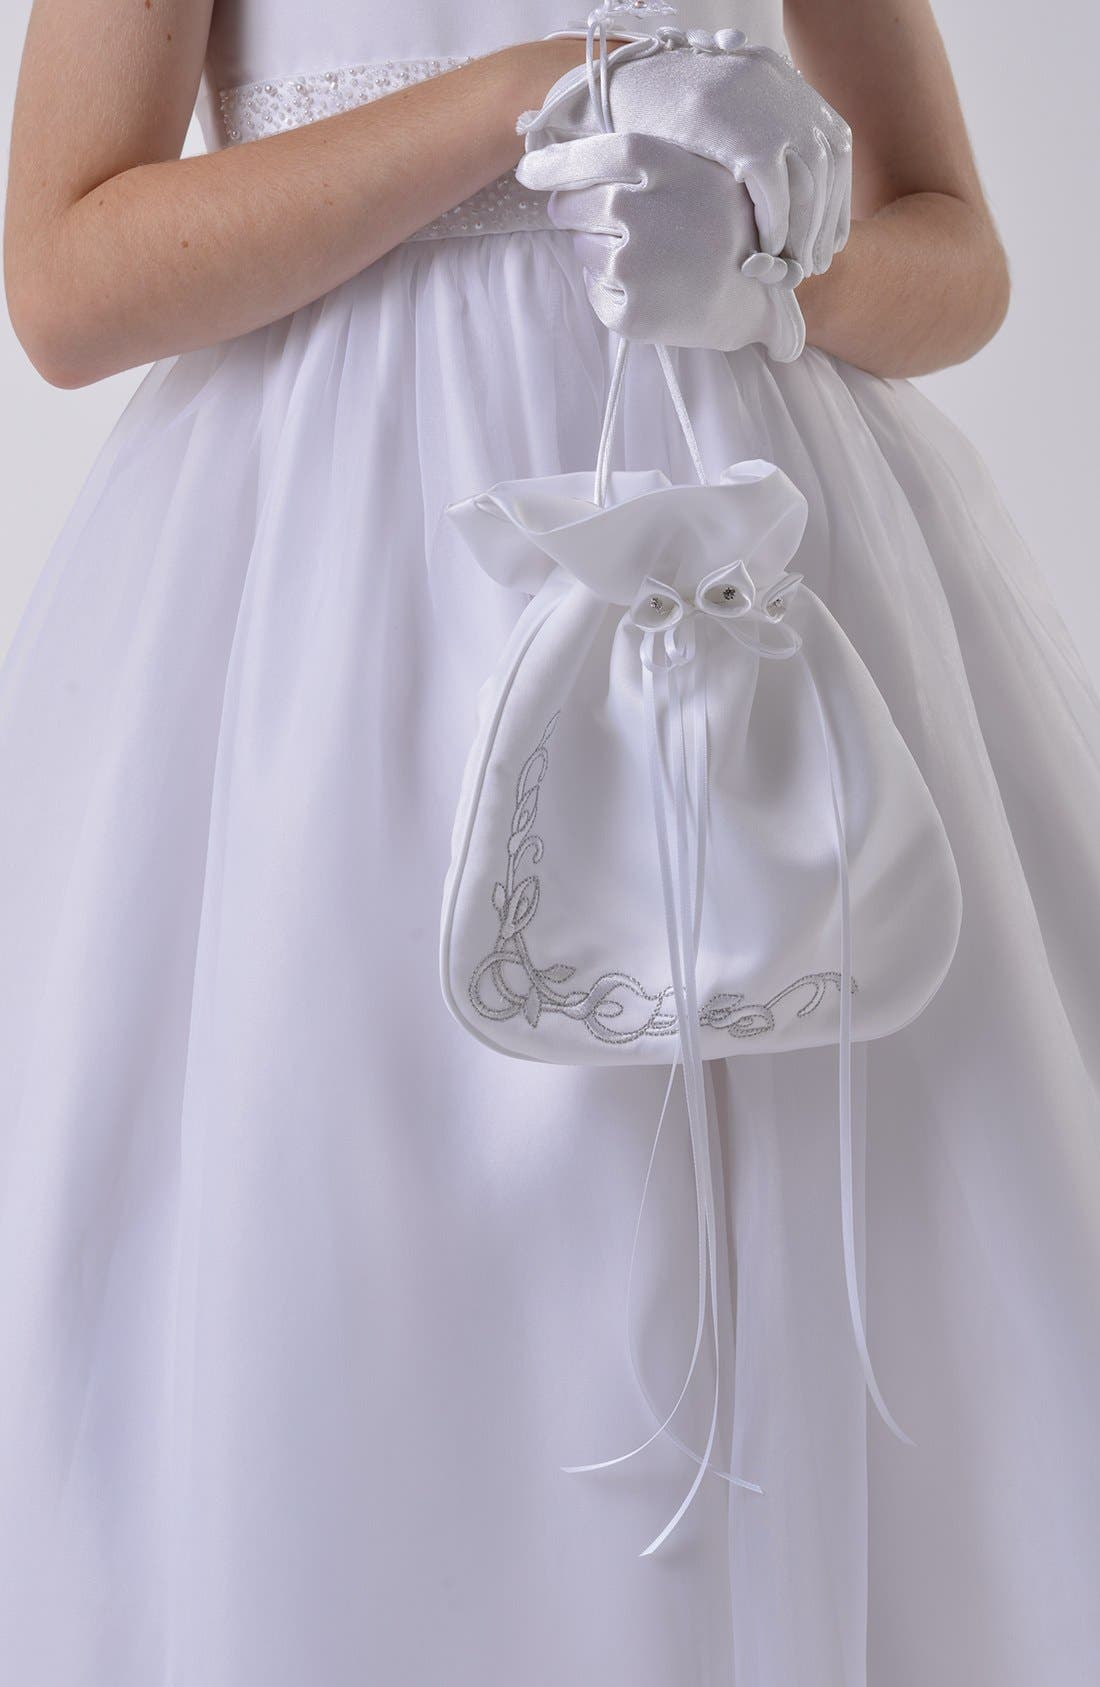 Alternate Image 1 Selected - Us Angels Communion Satin Drawstring Bag